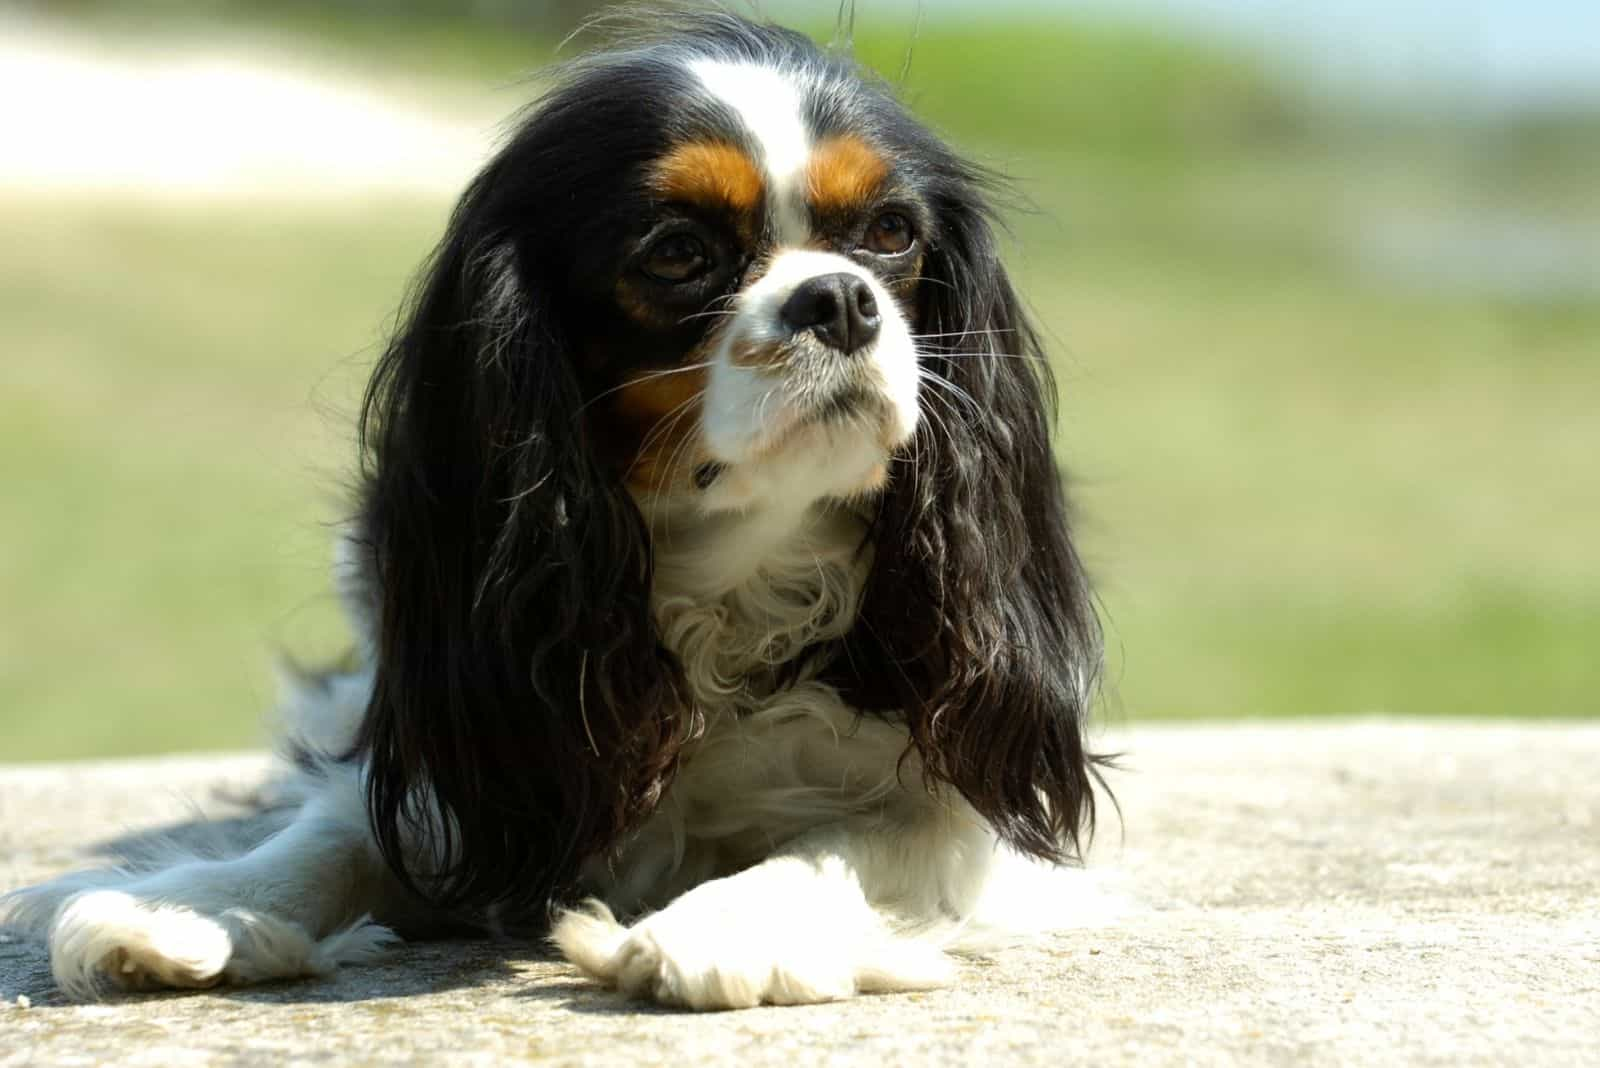 cavalier king charles spaniel resting outdoors